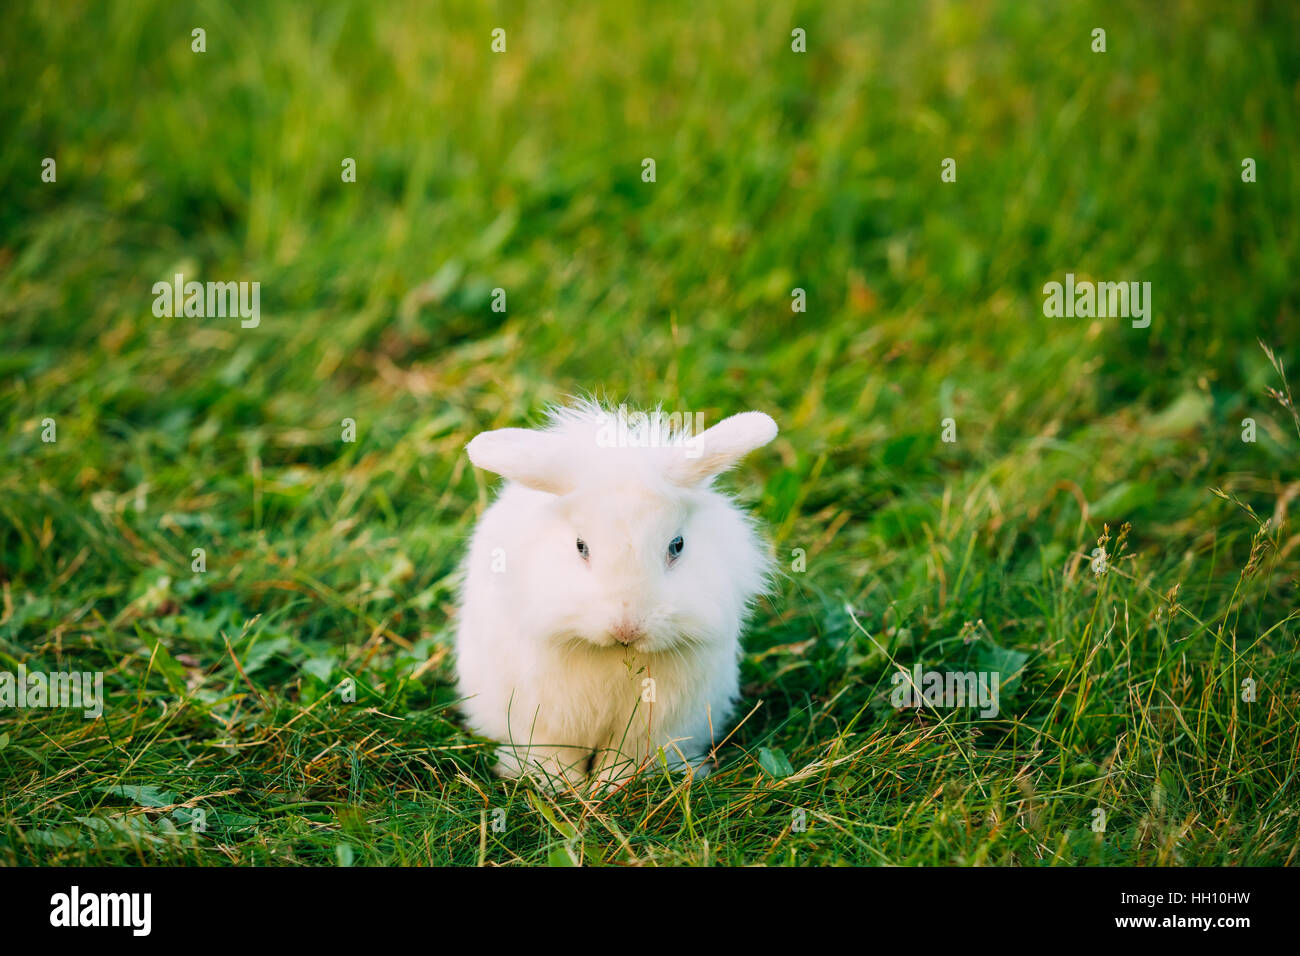 Cute Dwarf Lop-Eared Decorative Miniature Snow-White Fluffy Rabbit Bunny Mixed Breed With Blue Eyes Sitting In Bright - Stock Image